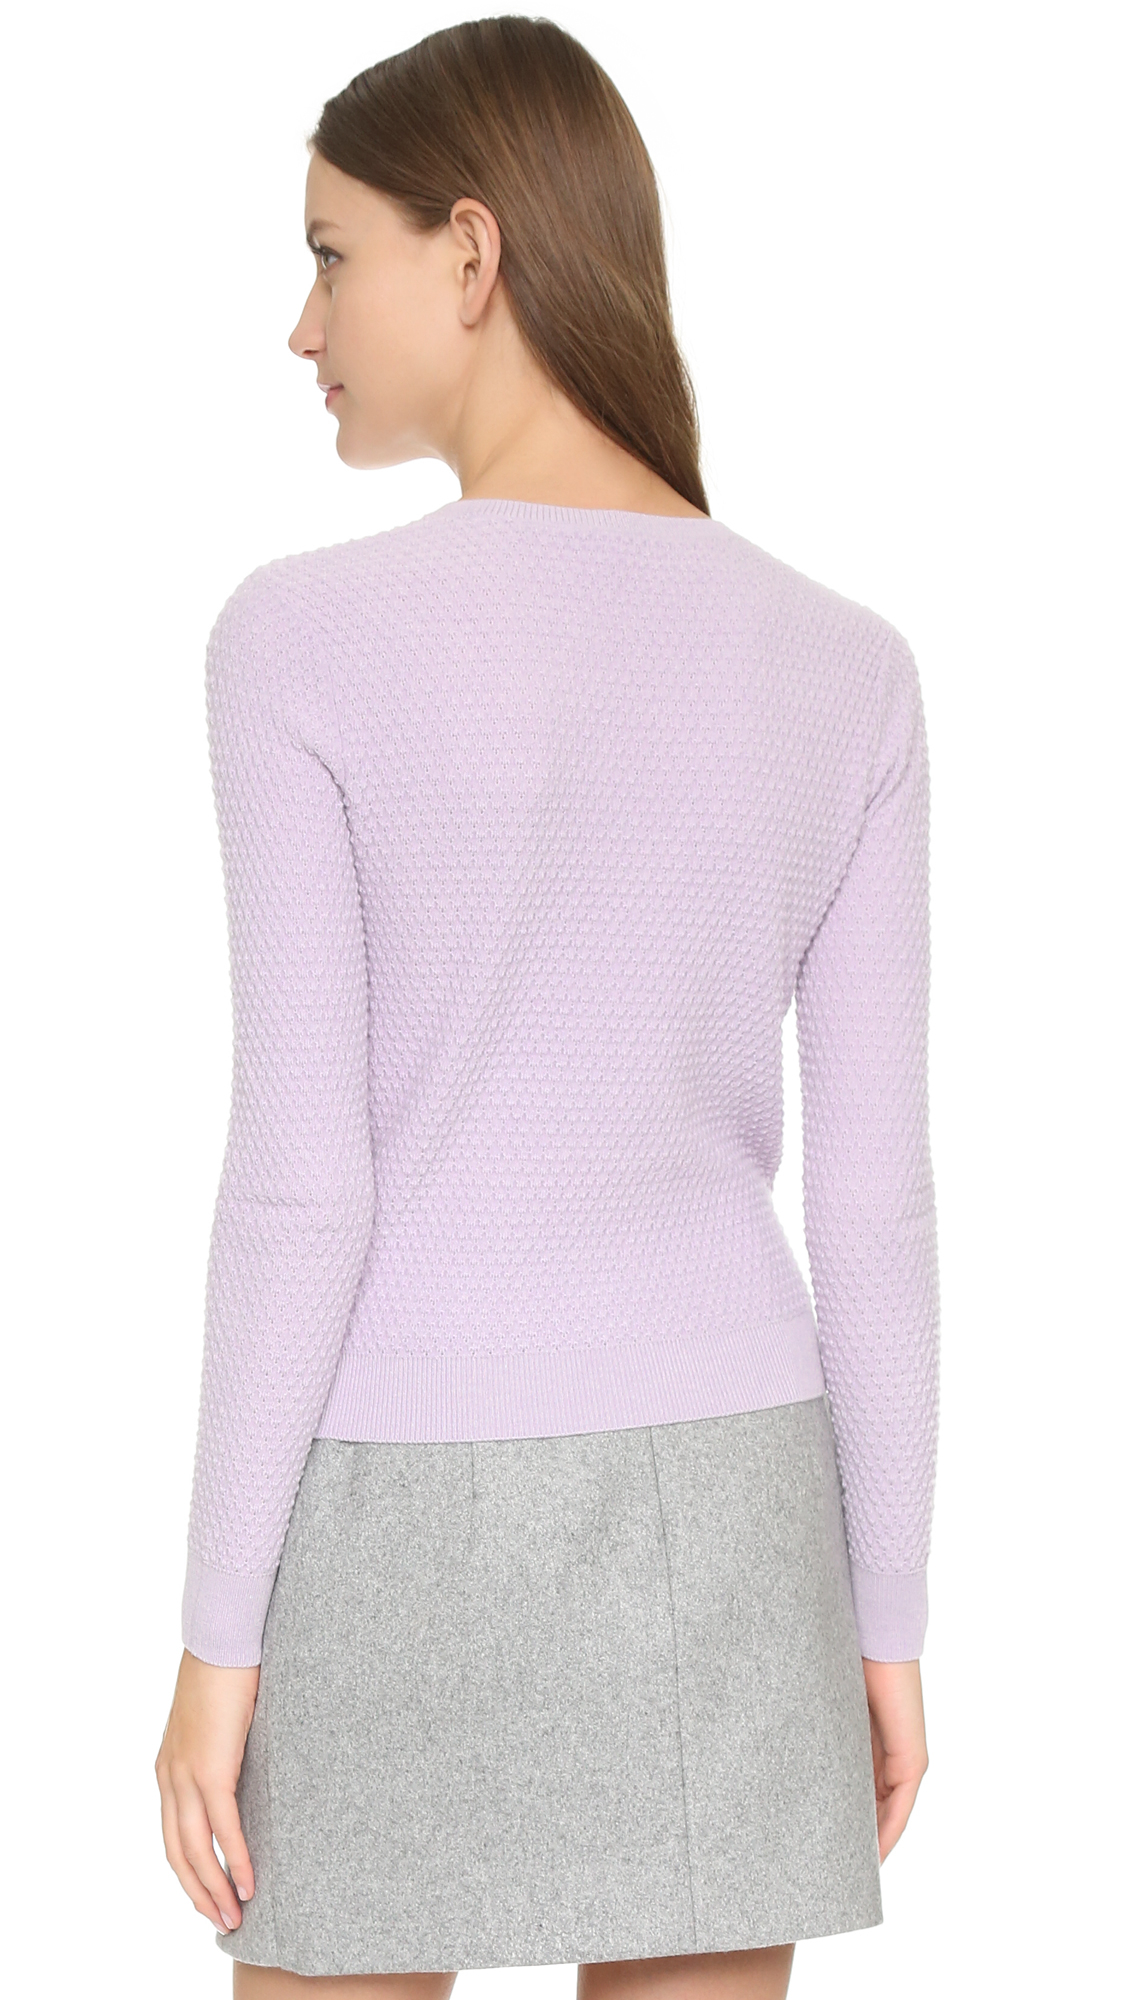 Carven Long Sleeve Sweater - Lilac in Purple | Lyst